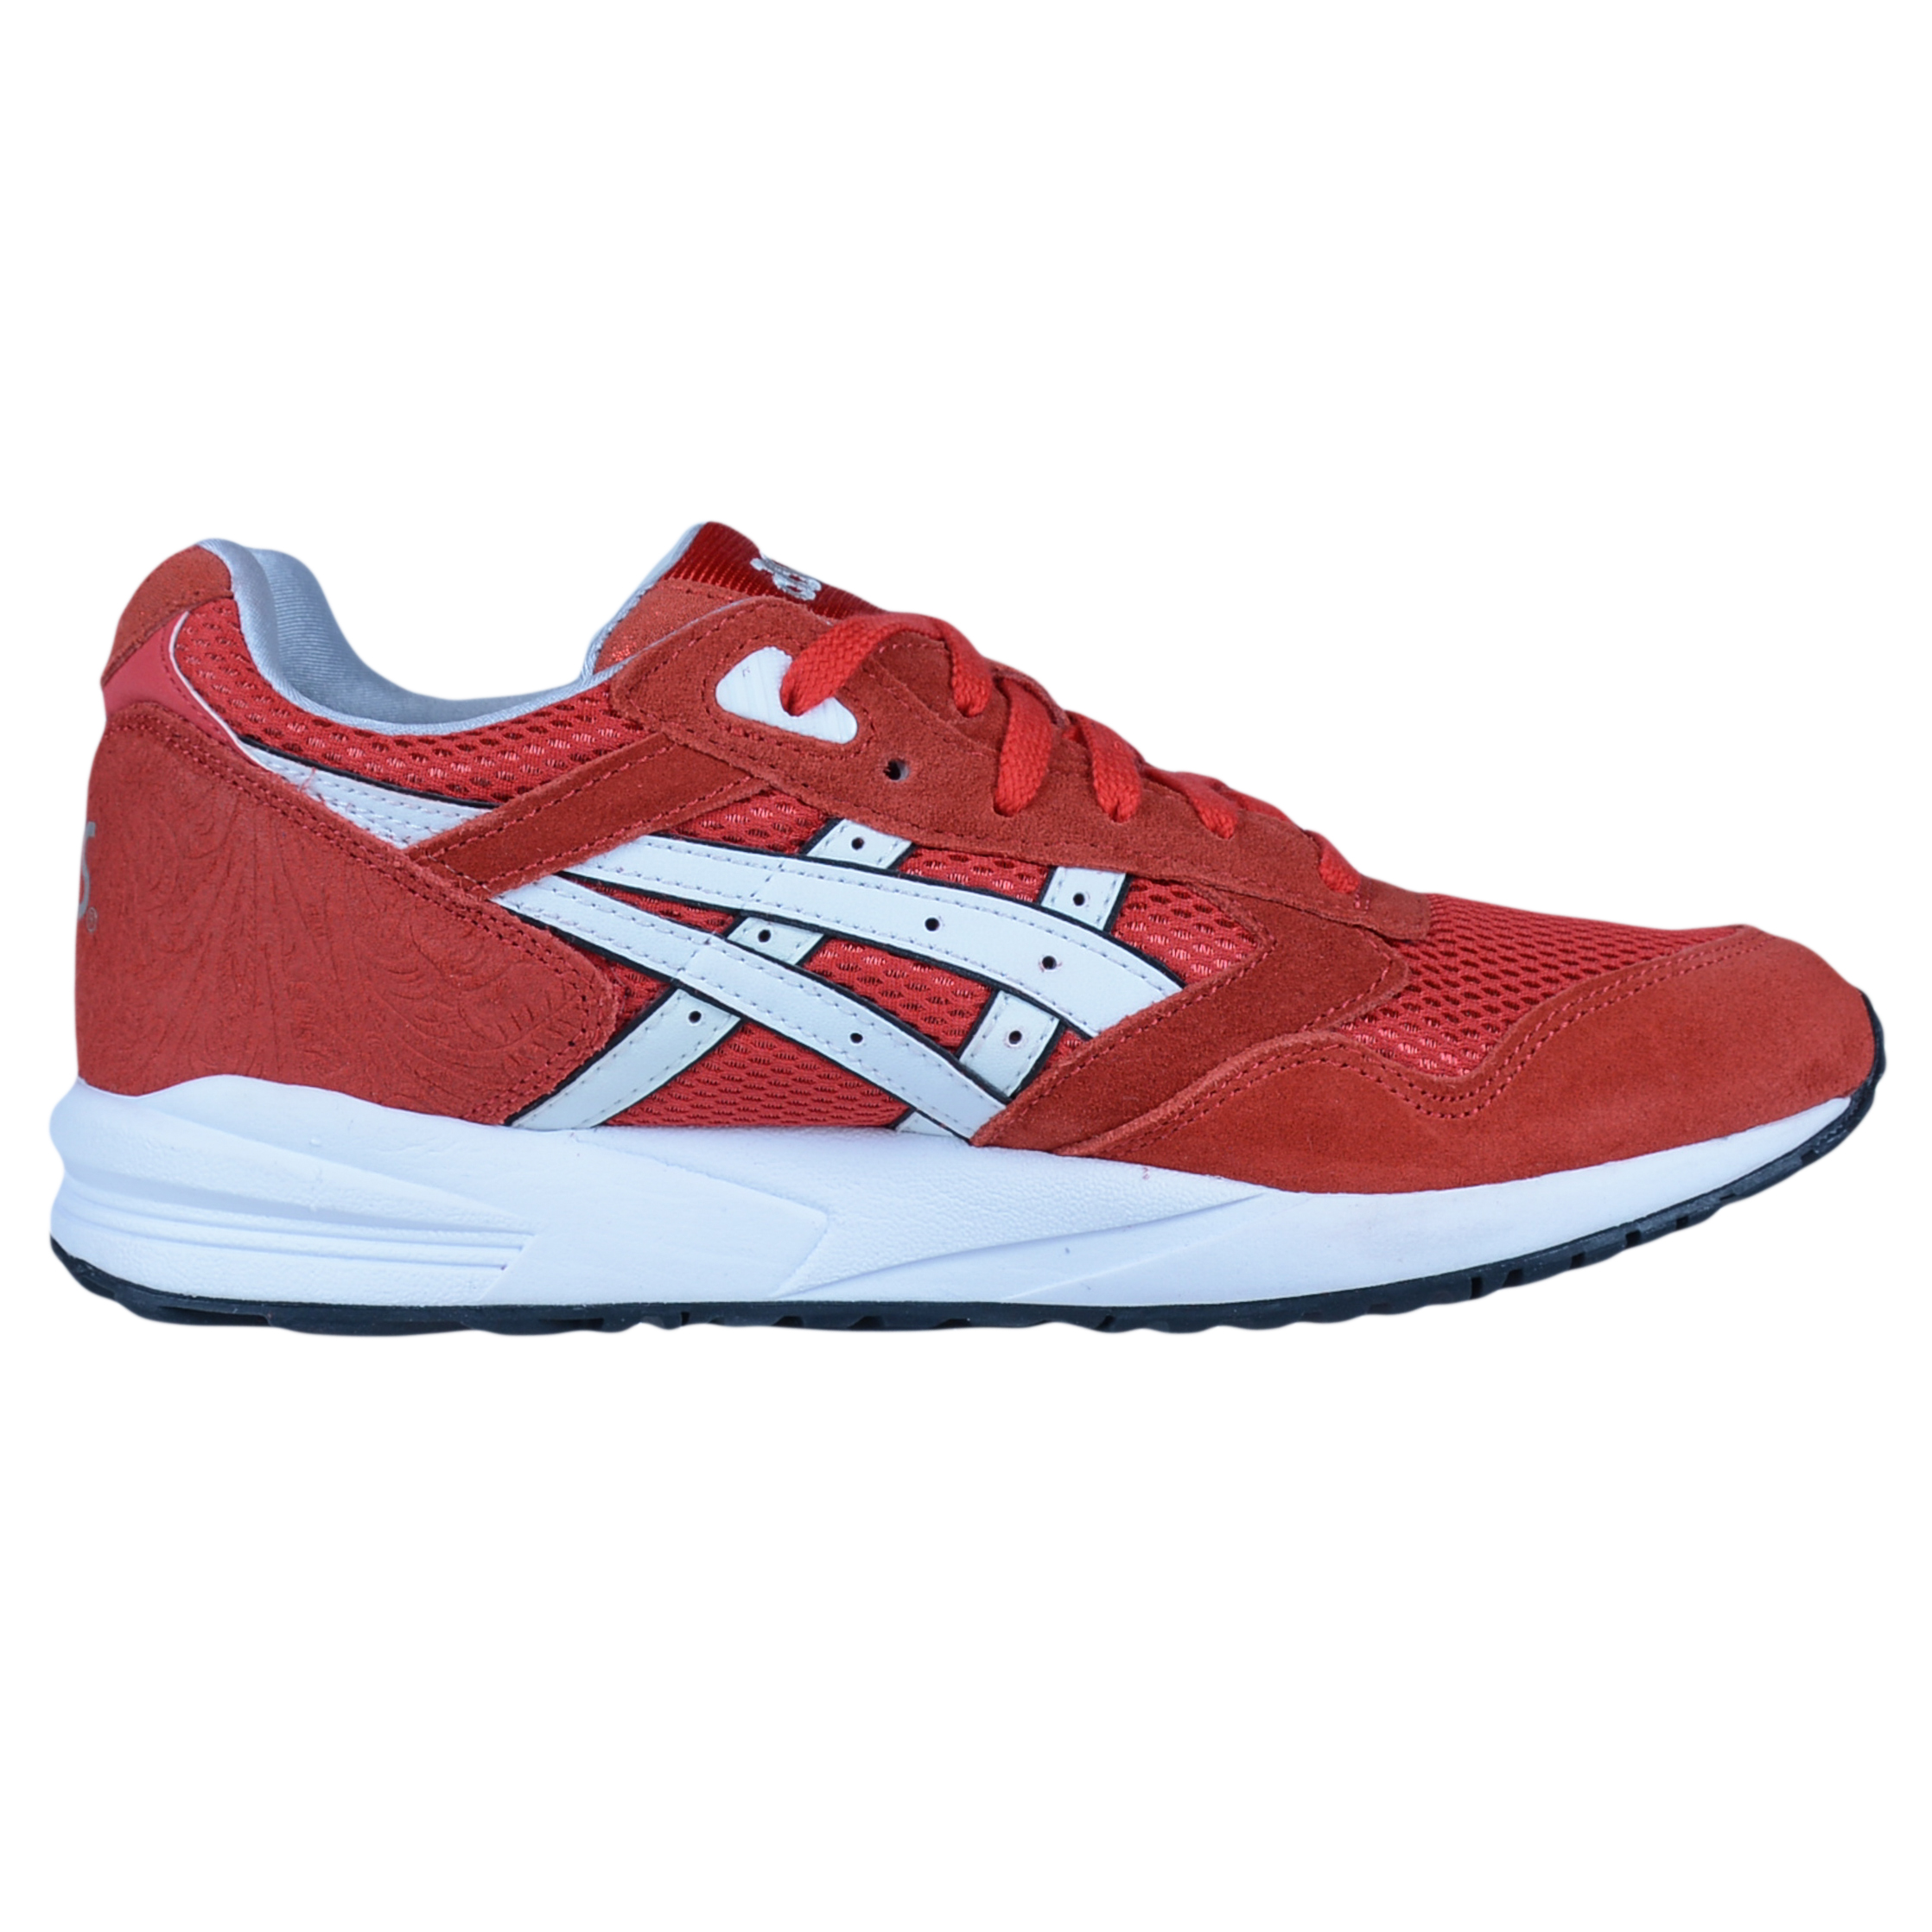 ASICS WOMEN'S GEL-SAGA LOVERS AND HATERS PACK FAIRY RED WHITE H462N 2301